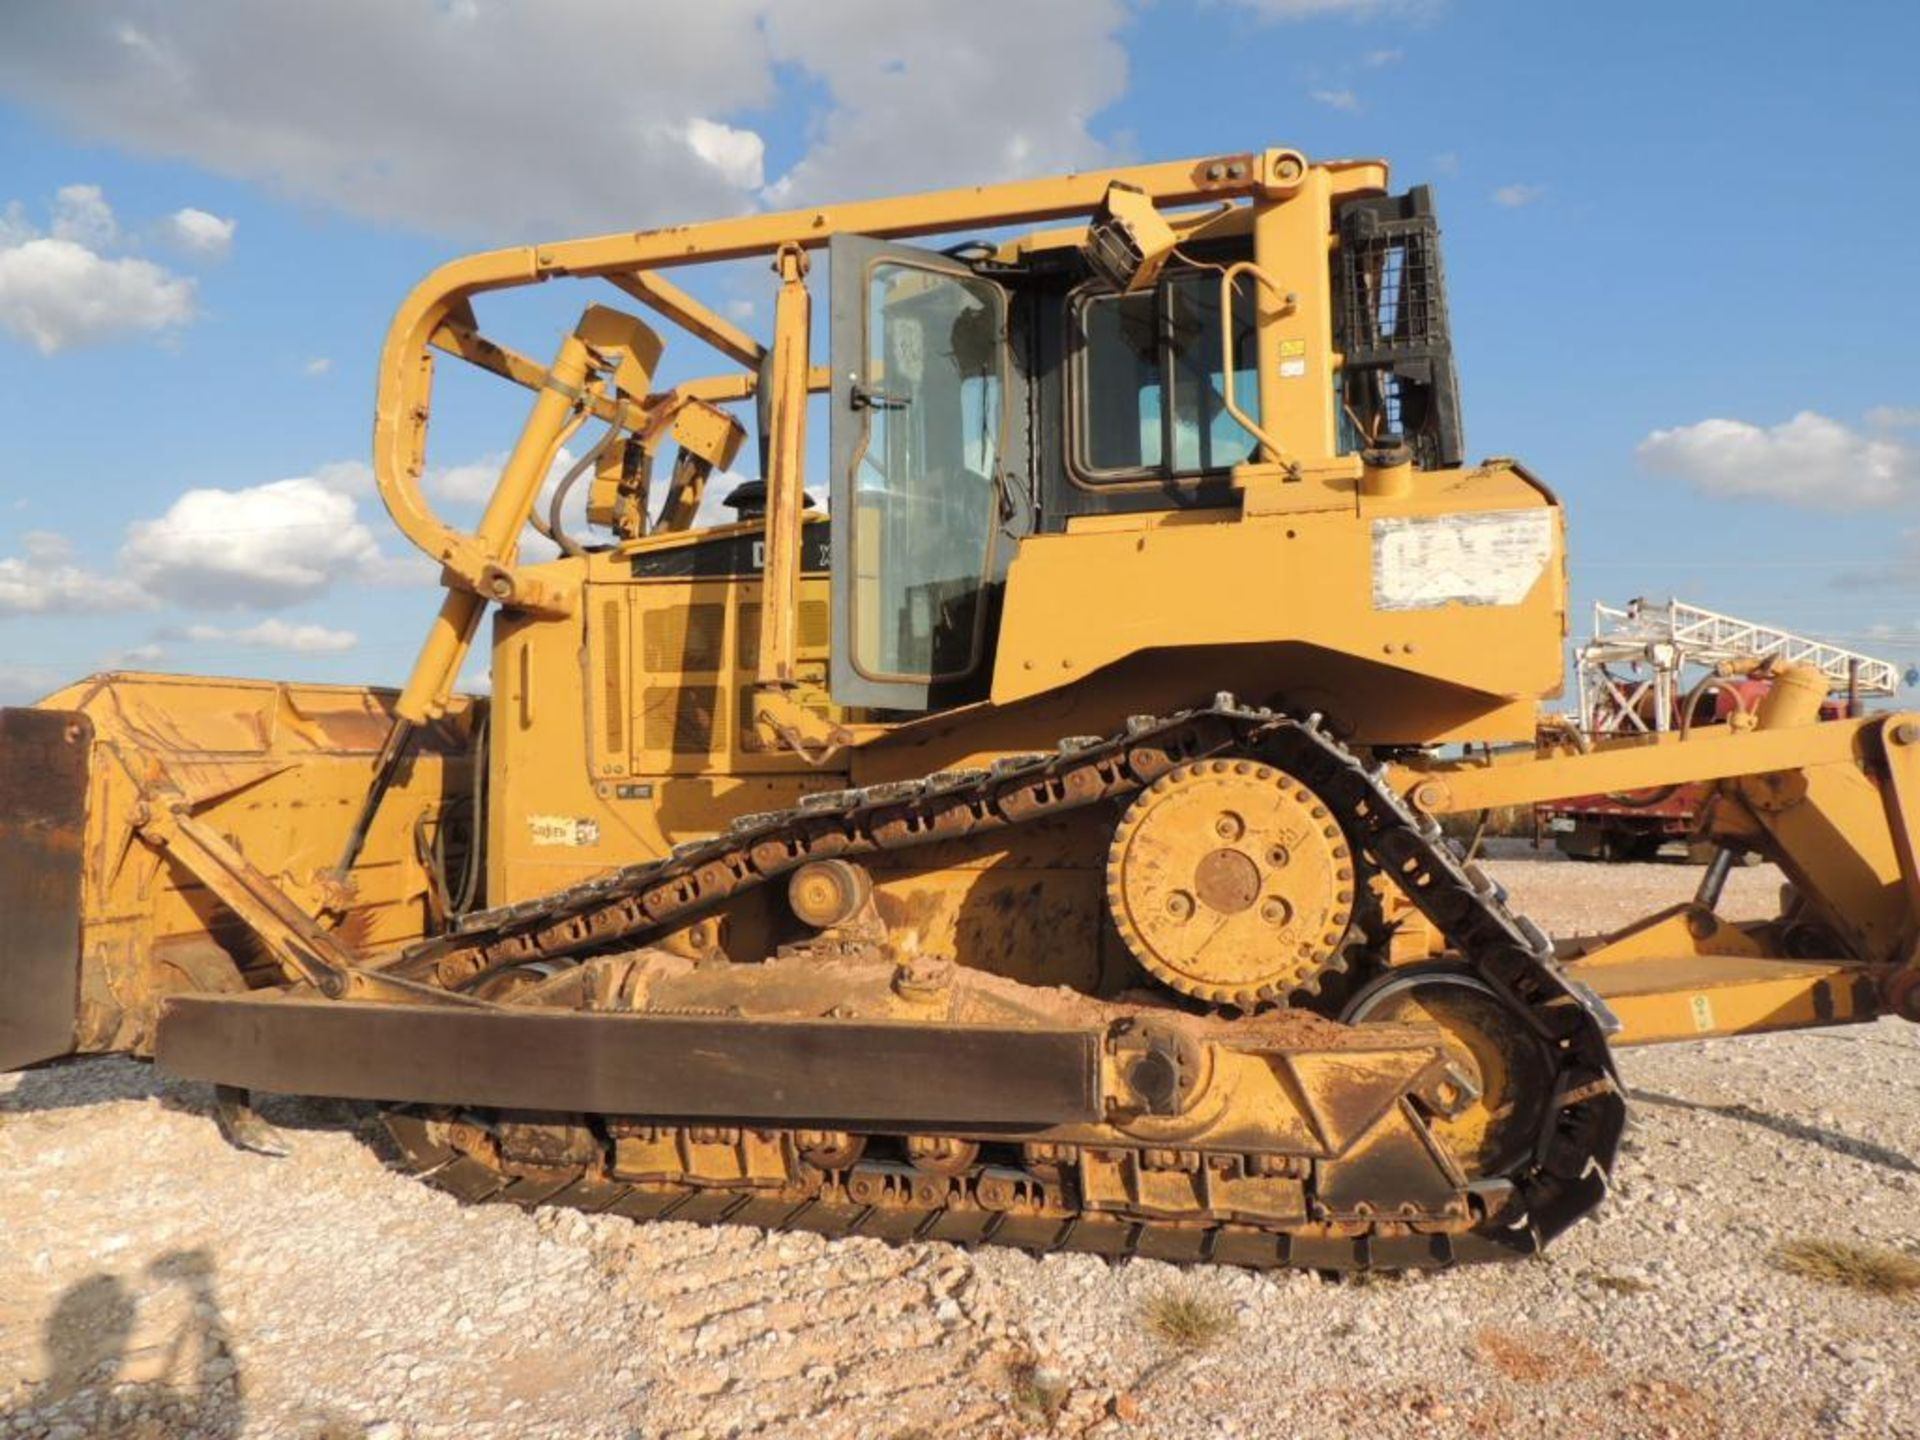 2007 Caterpillar D6T XL Crawler Tractor w/ Ripper, 90 % Remaining on Undercarrige, EROPS, Semi-U - Image 8 of 10